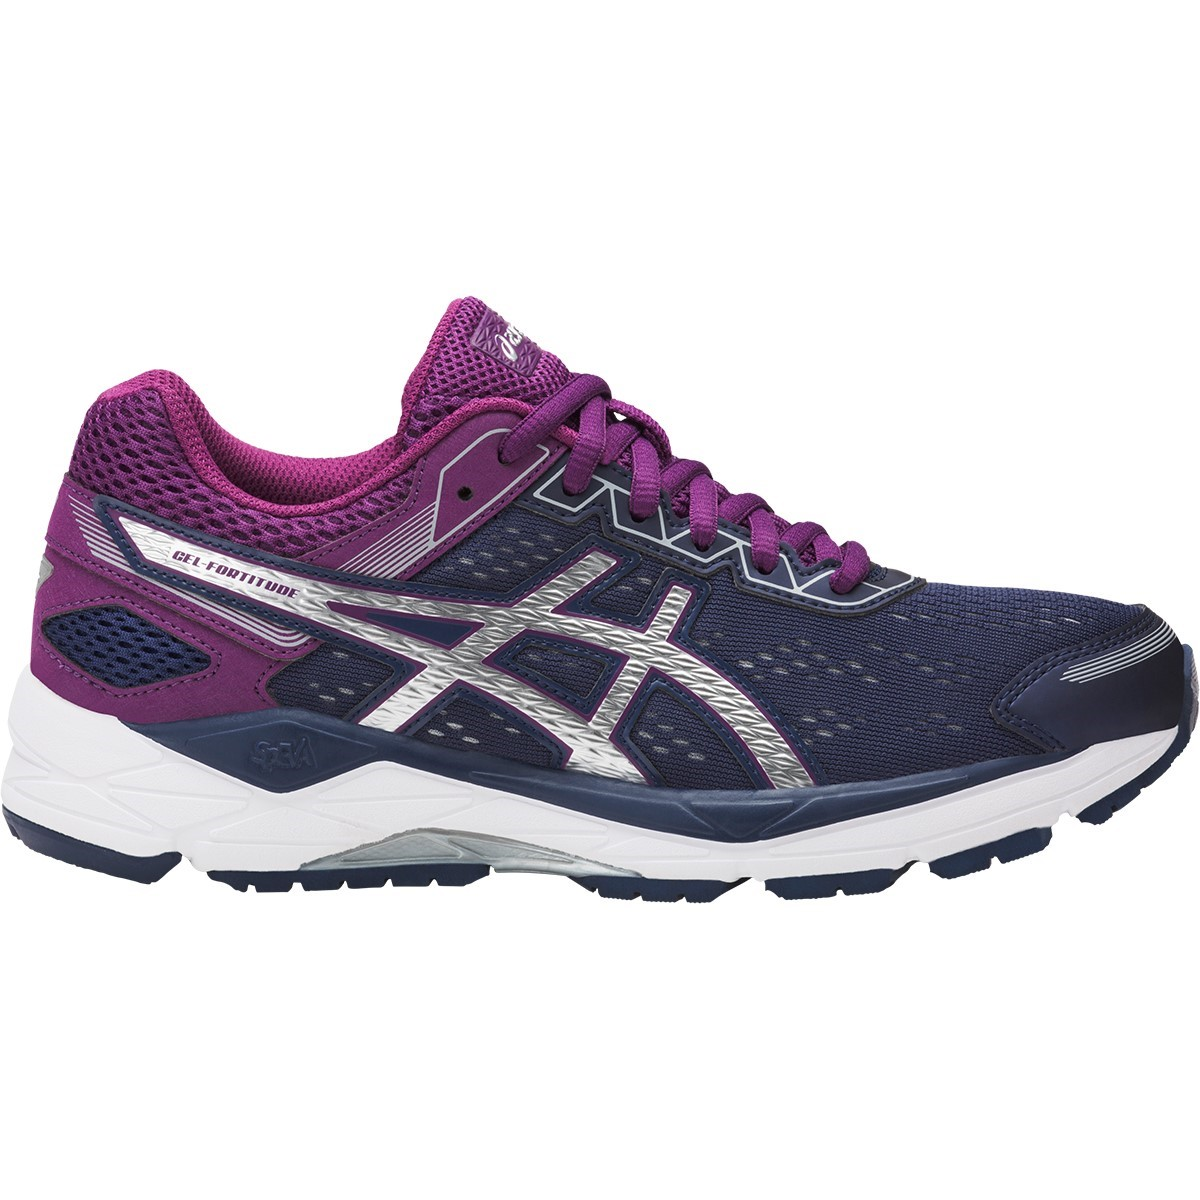 001a2b9c Asics Gel Fortitude 7 - Womens Running Shoes